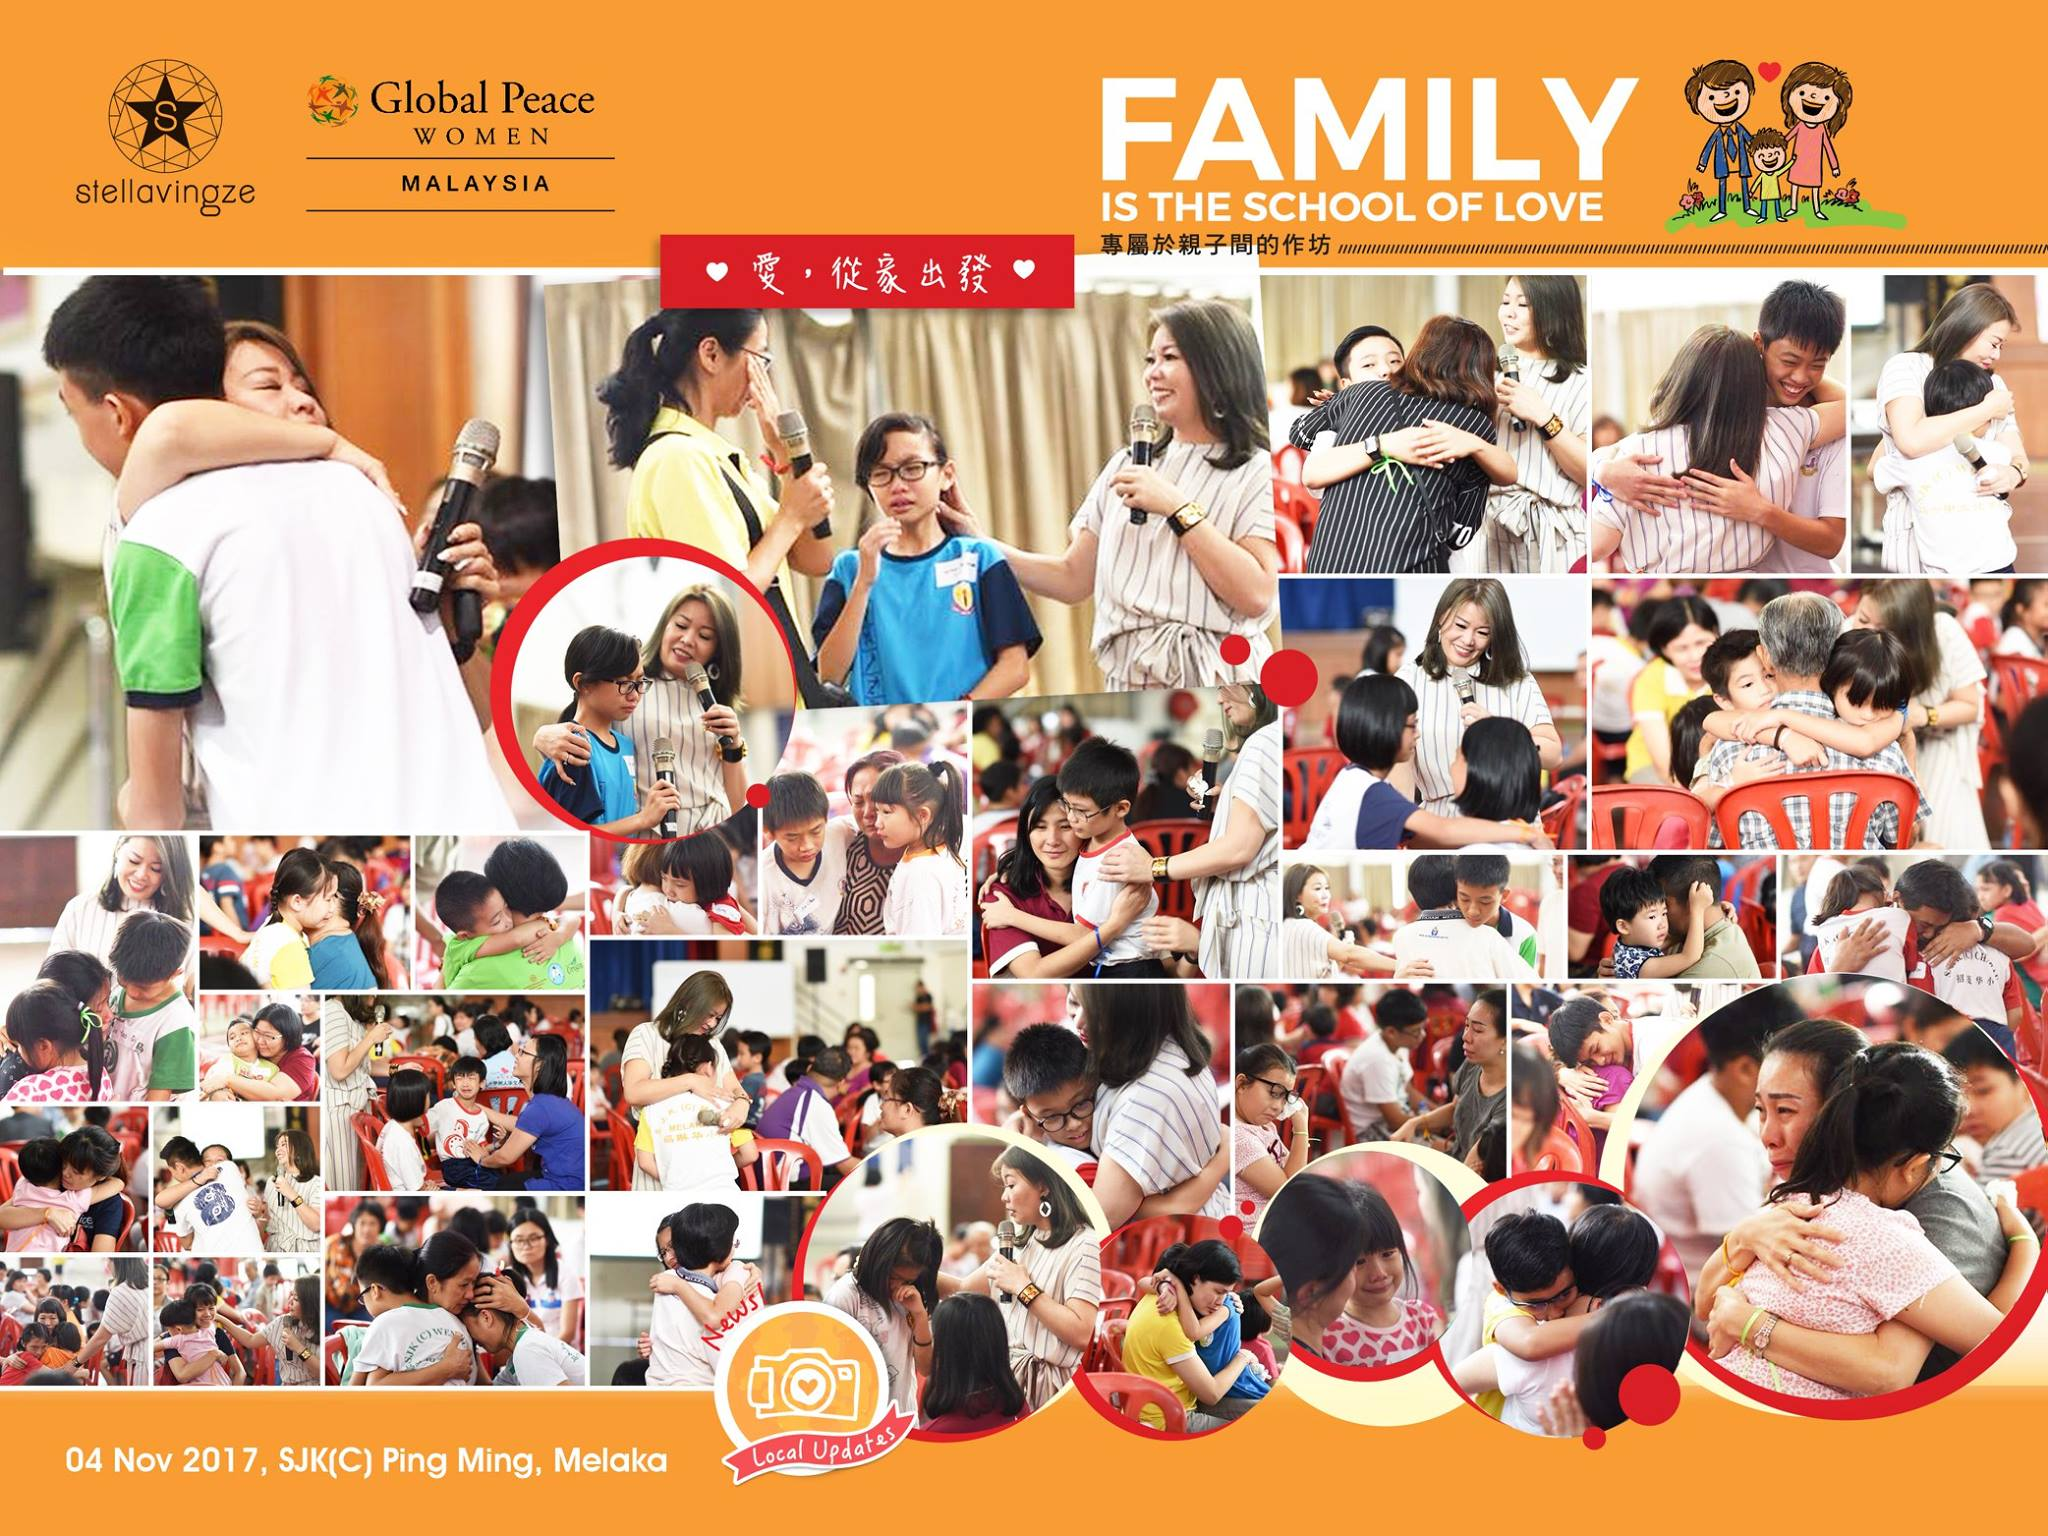 Love from our parents are endless, they burn themselves to illuminate their children Love Your Parents always~ And build a Happy Family filled with love together hand in hand!   #StellavingzeInternational  #GlobalPeaceWomen  #GlobalPeaceFoundation  #FamilyIsTheSchoolOfLove  #愛從家出發